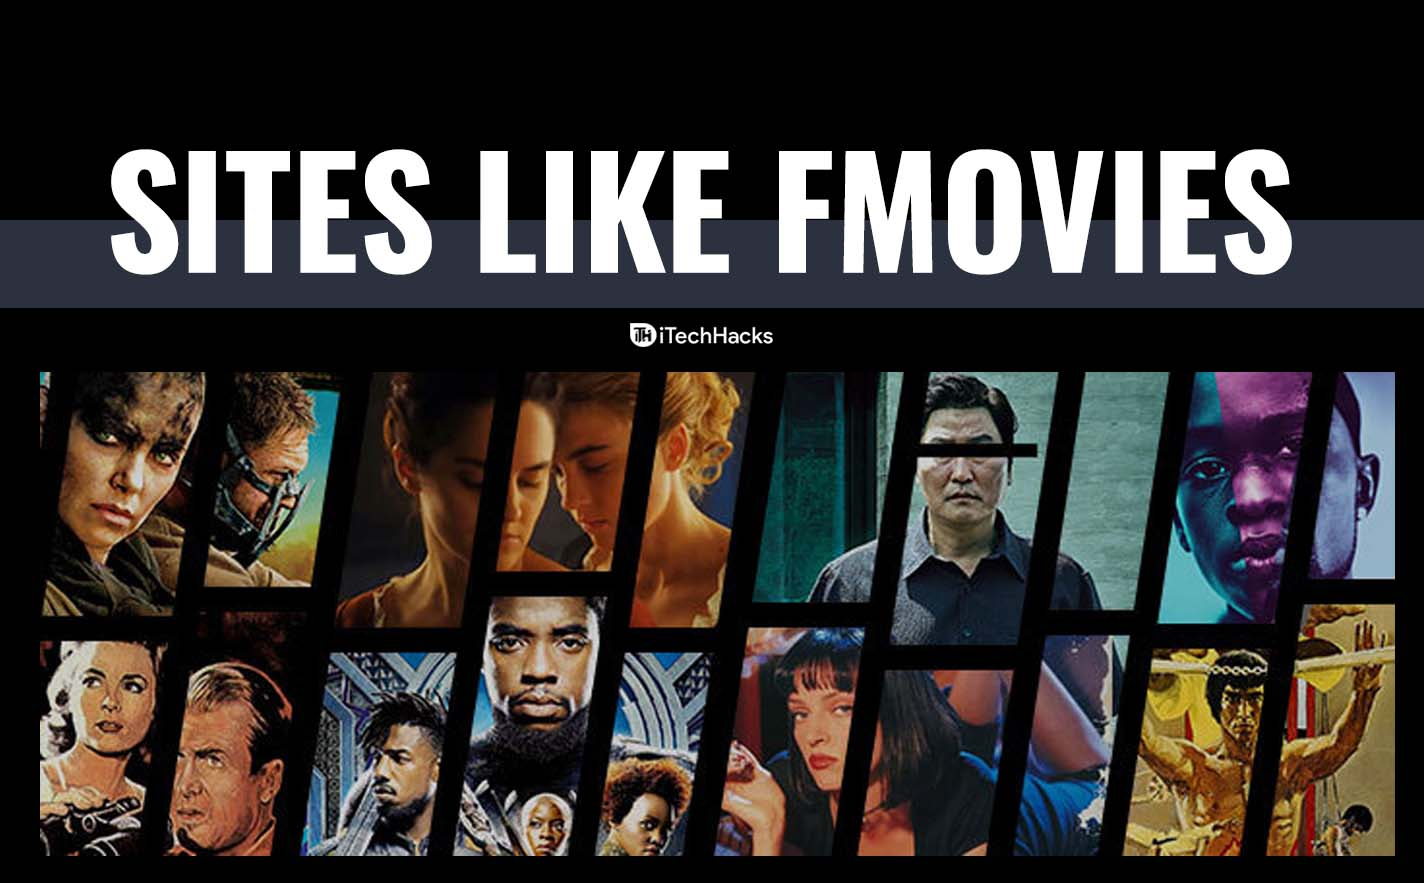 7 Best Sites Like FMovies To Watch TV Episodes For Free